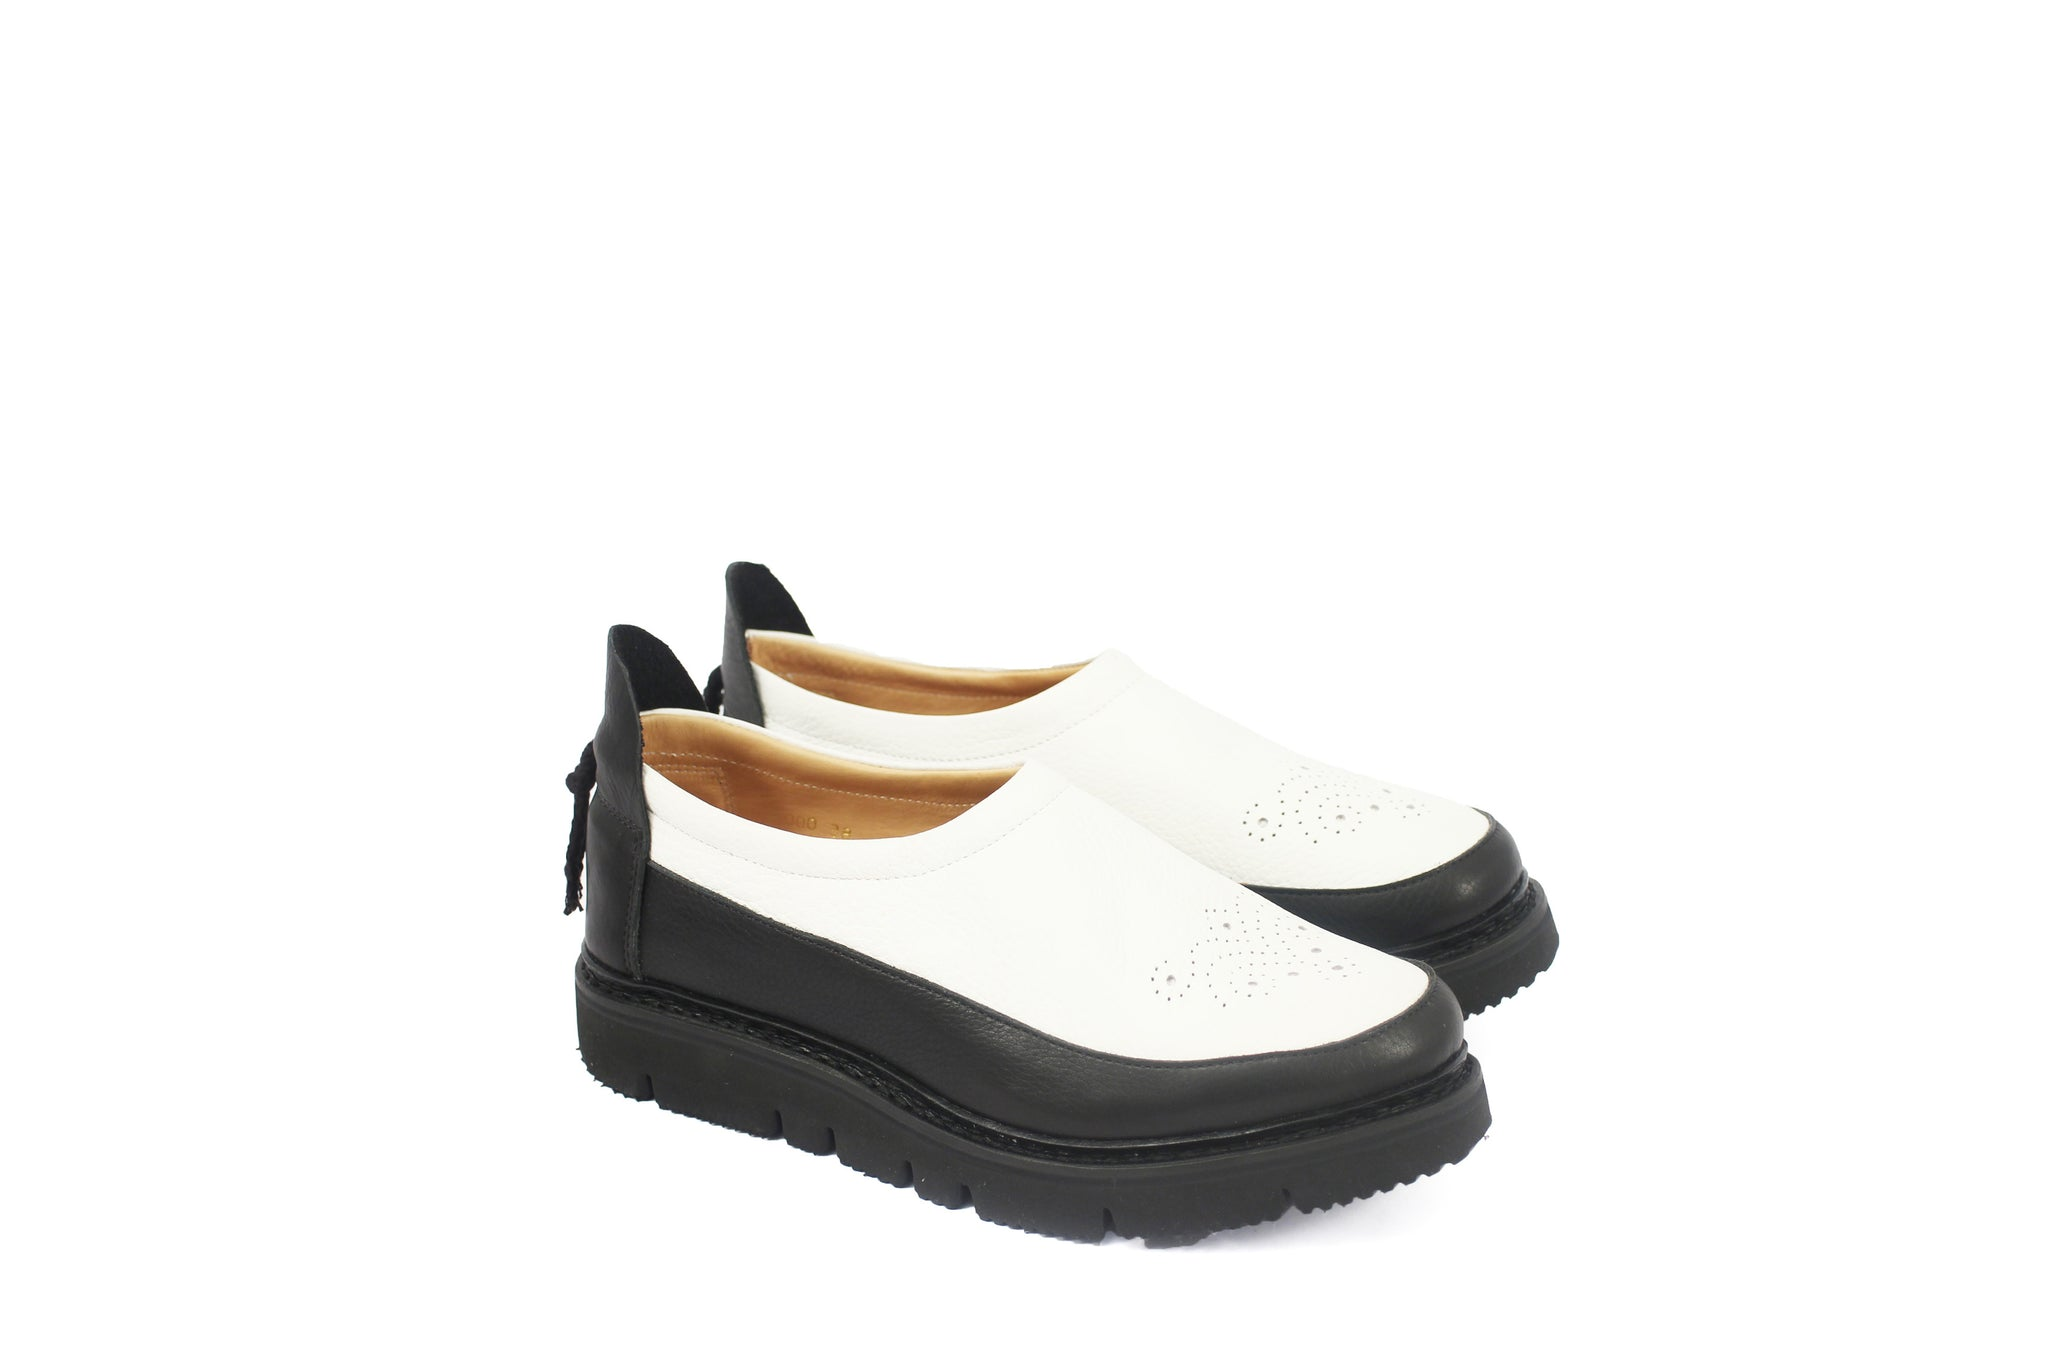 MOC SHOES BLACK+WHITE